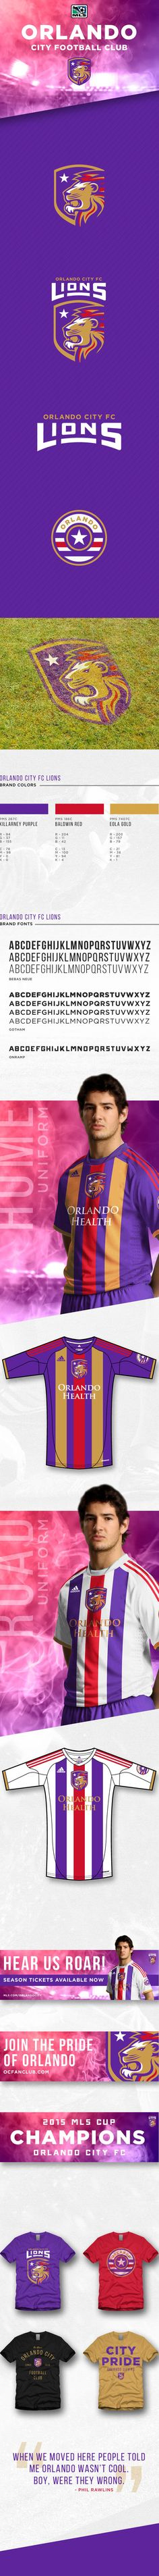 Orlando City Football Club - Identity proposal by Brandon Moore, via Behance